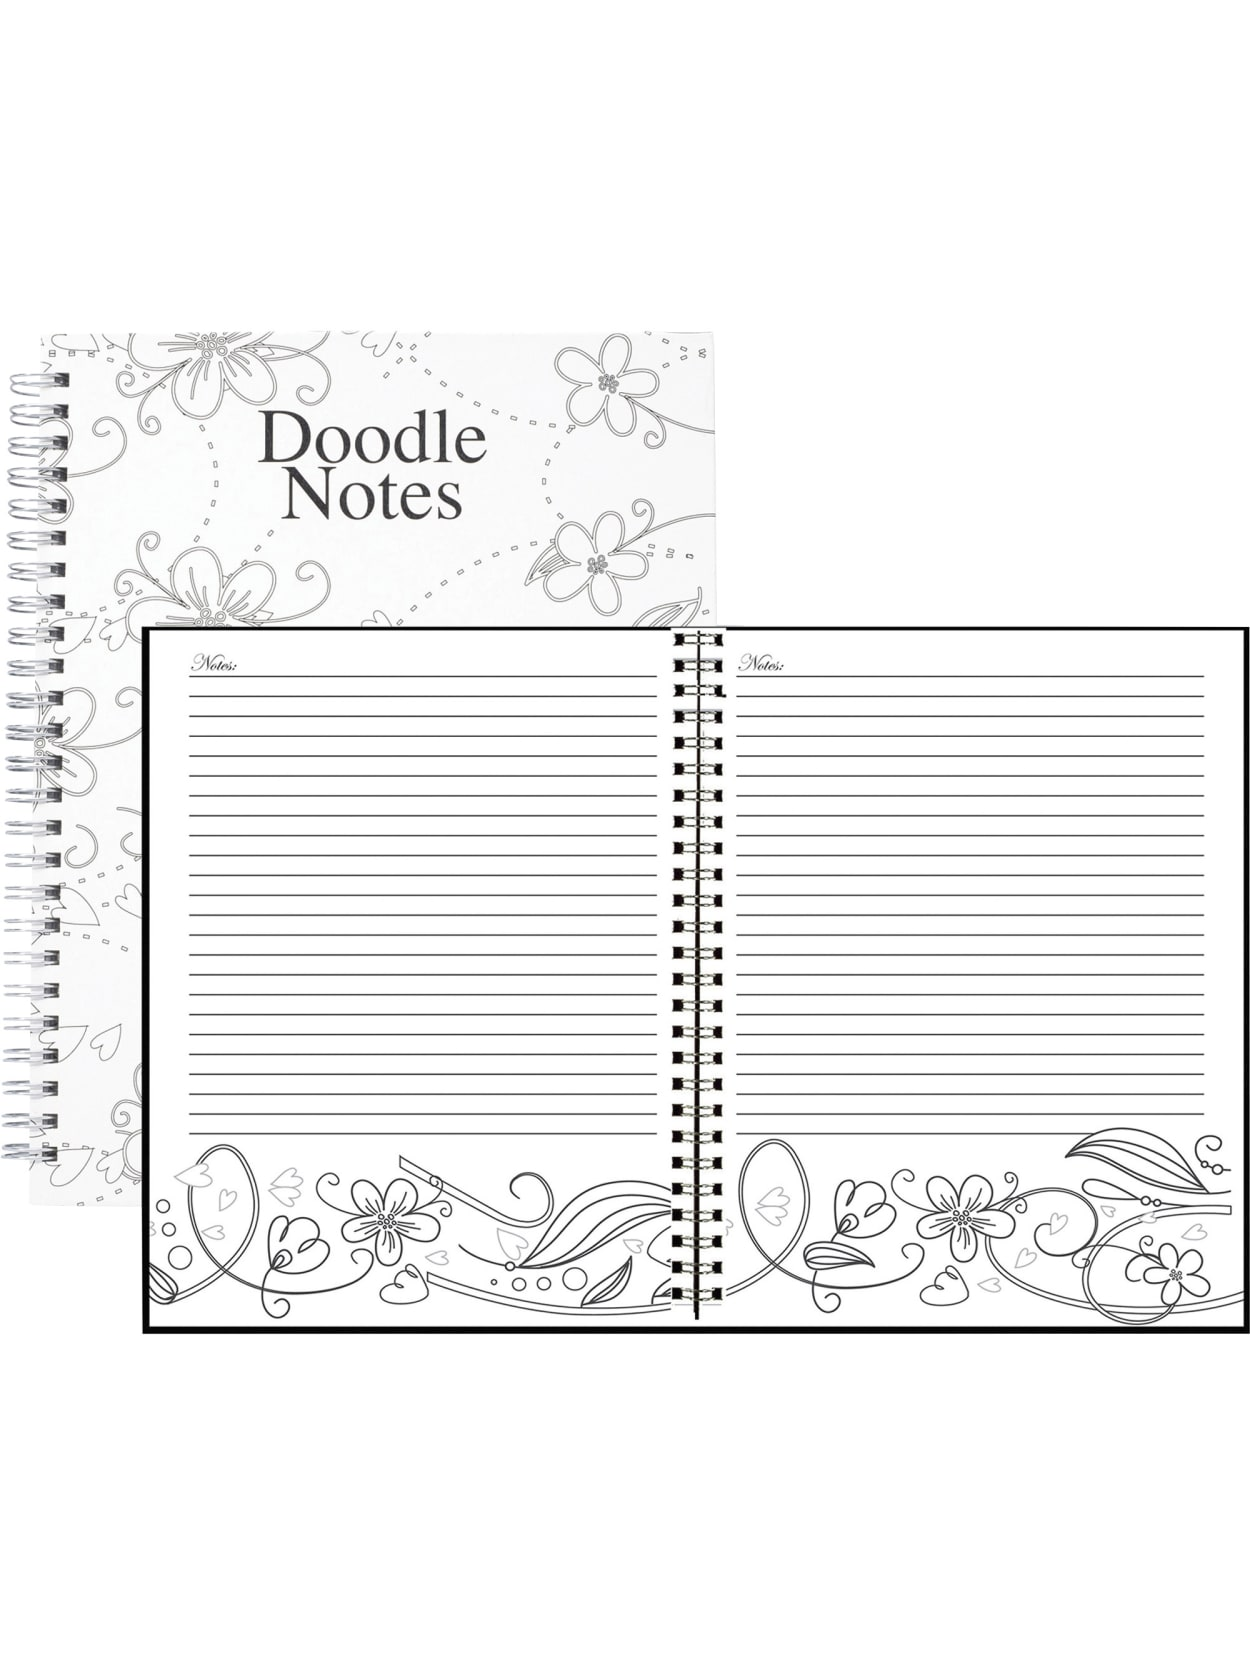 House Of Doolittle Doodle Notes Spiral Notebook 7 X 9 100percent Recycled Blackwhite January To December 2021 Office Depot